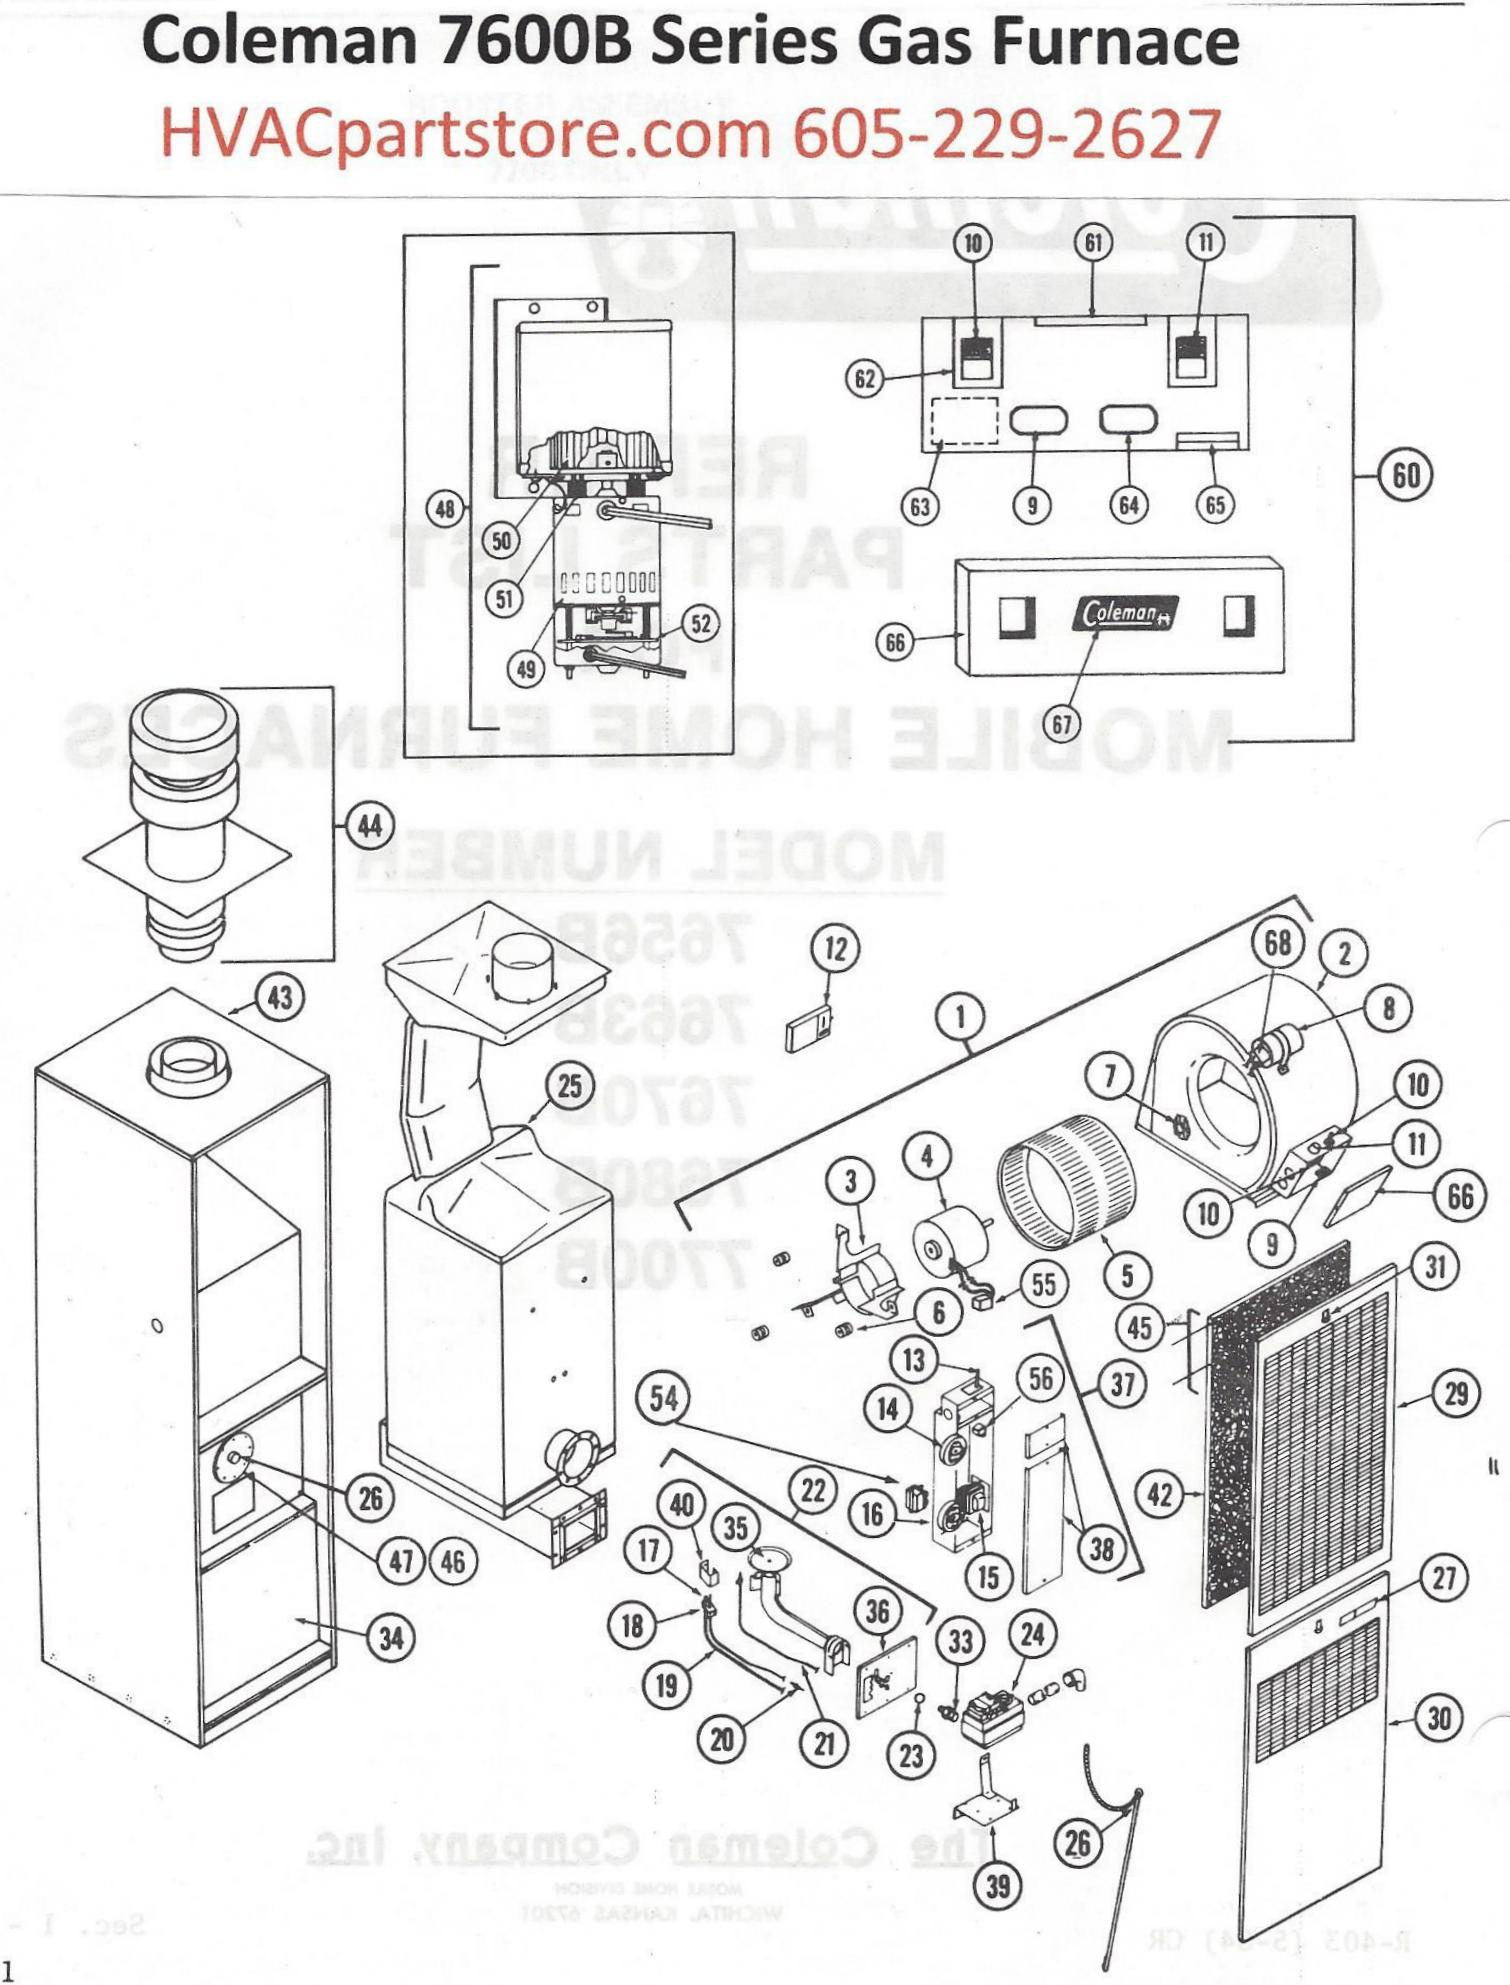 7600BDiagram?3087977773874111912 7656b856 coleman gas furnace parts hvacpartstore coleman furnace wiring diagram at cos-gaming.co